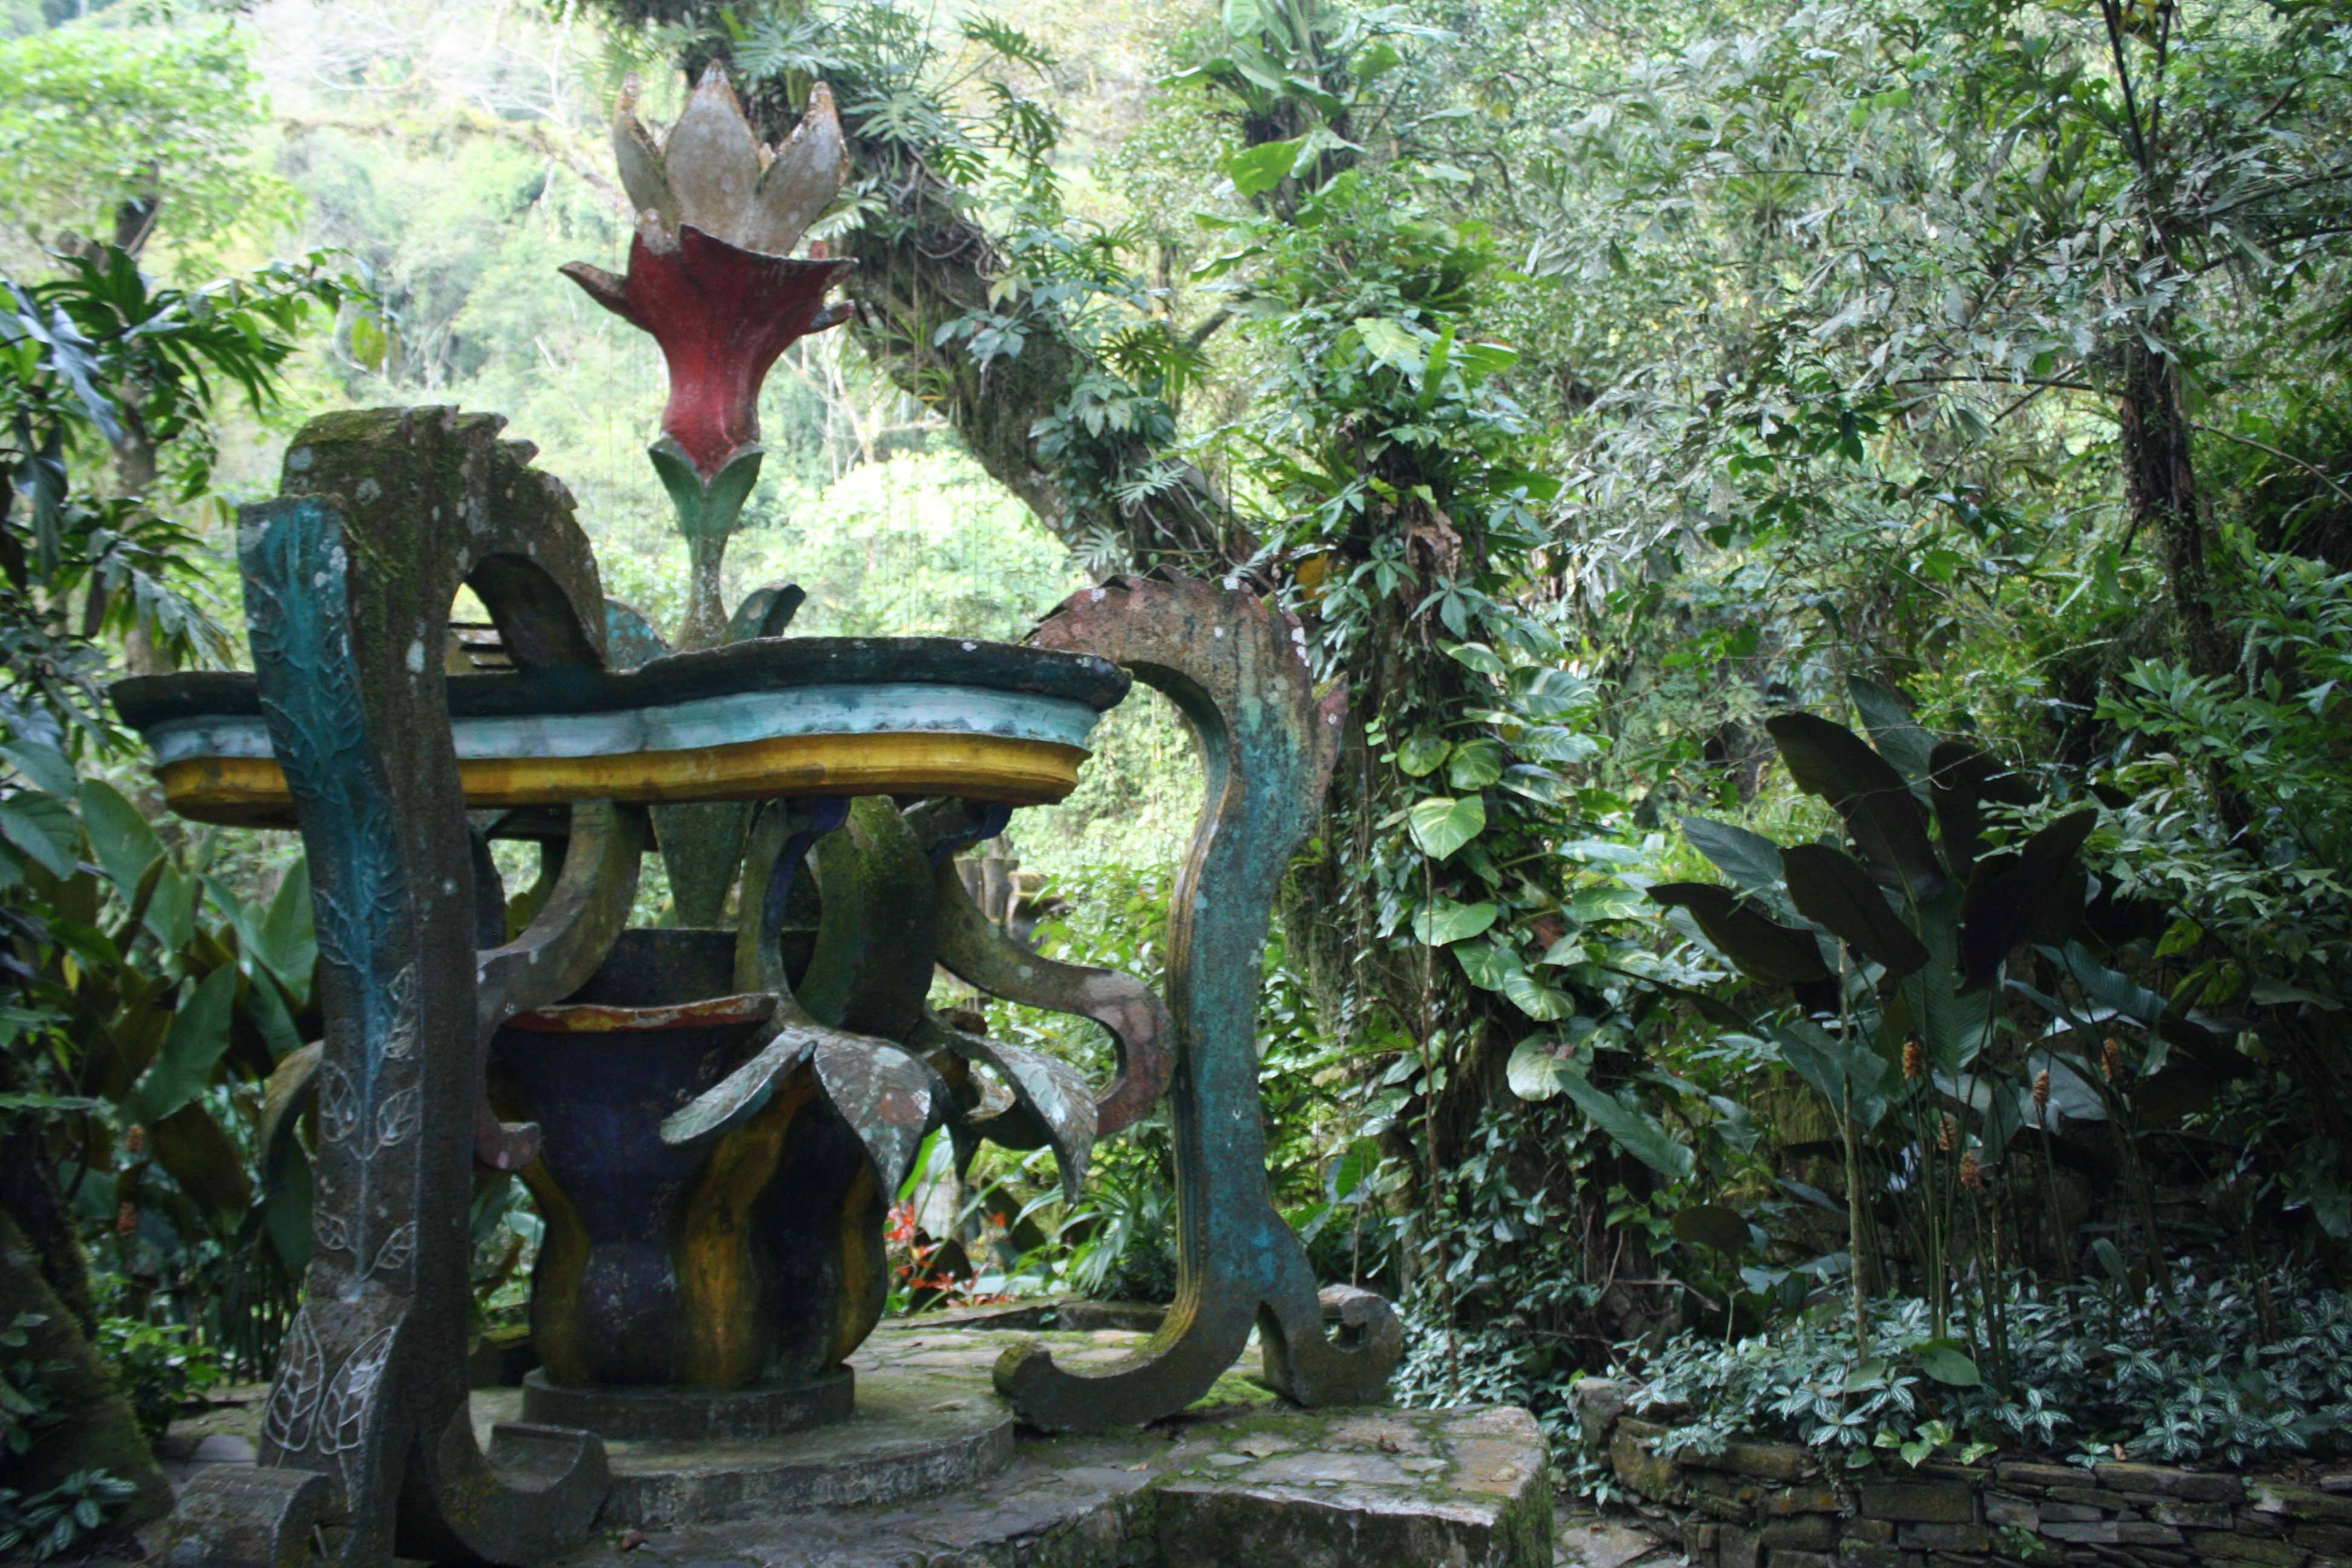 A flower sculpture in Las Pozas evokes the ruins of ancient Greece but is overrun by exotic plants.